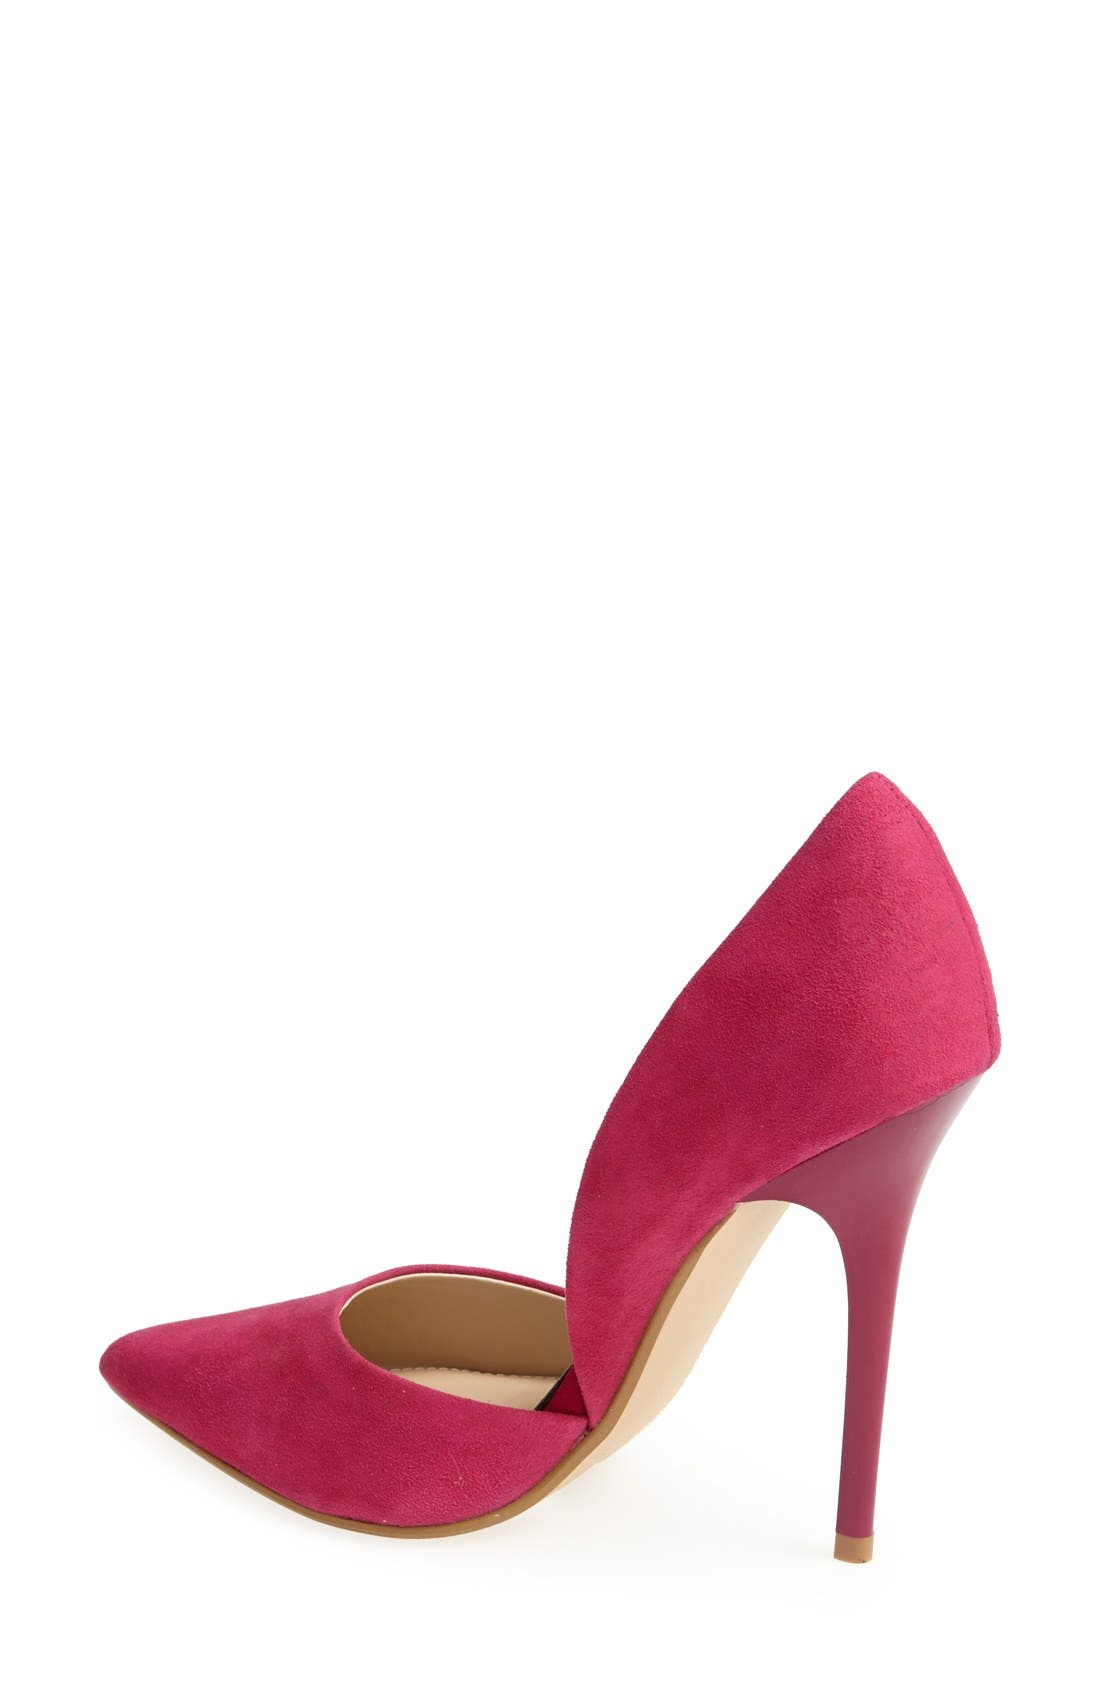 Alternate Image 2  - Steve Madden 'Varcityy' Pointy Toe Pump (Women)